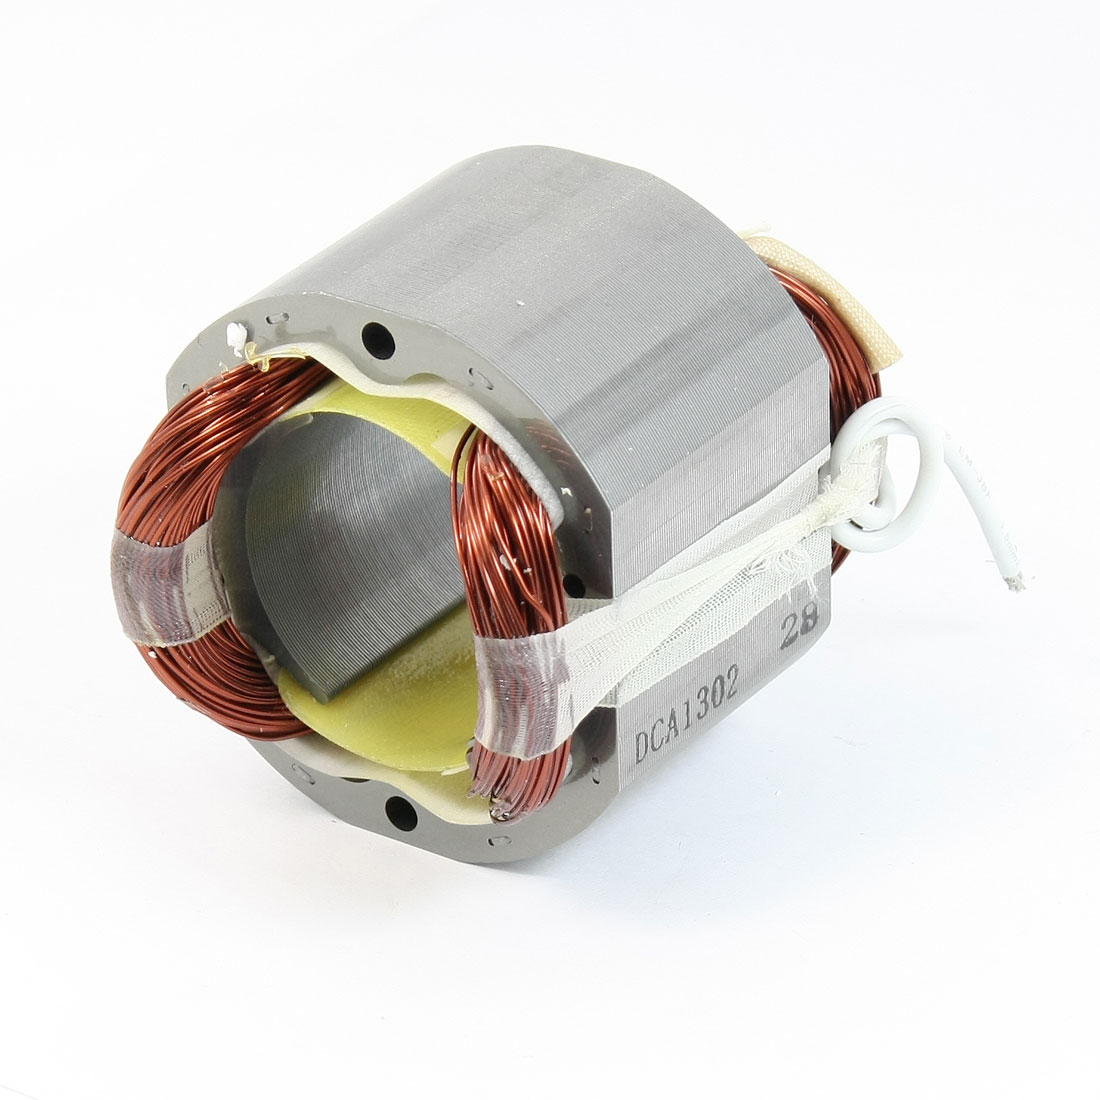 AC 220V Electric Drill Part 49mm Core 2-Cable Motor Stator DCA Z1Z-FF-90